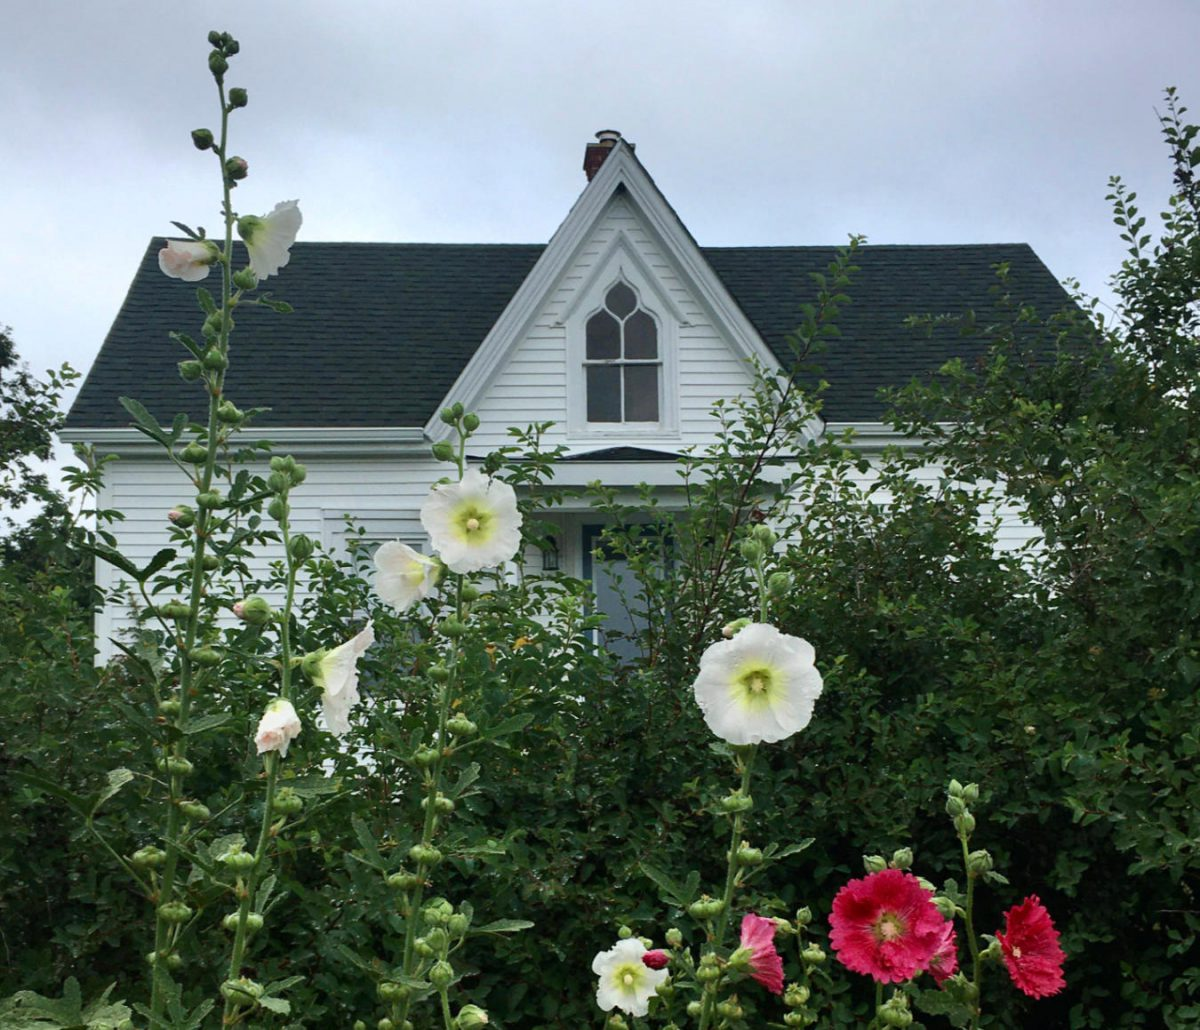 Gothic revival farmhouse with pink and white hollyhocks in the foreground